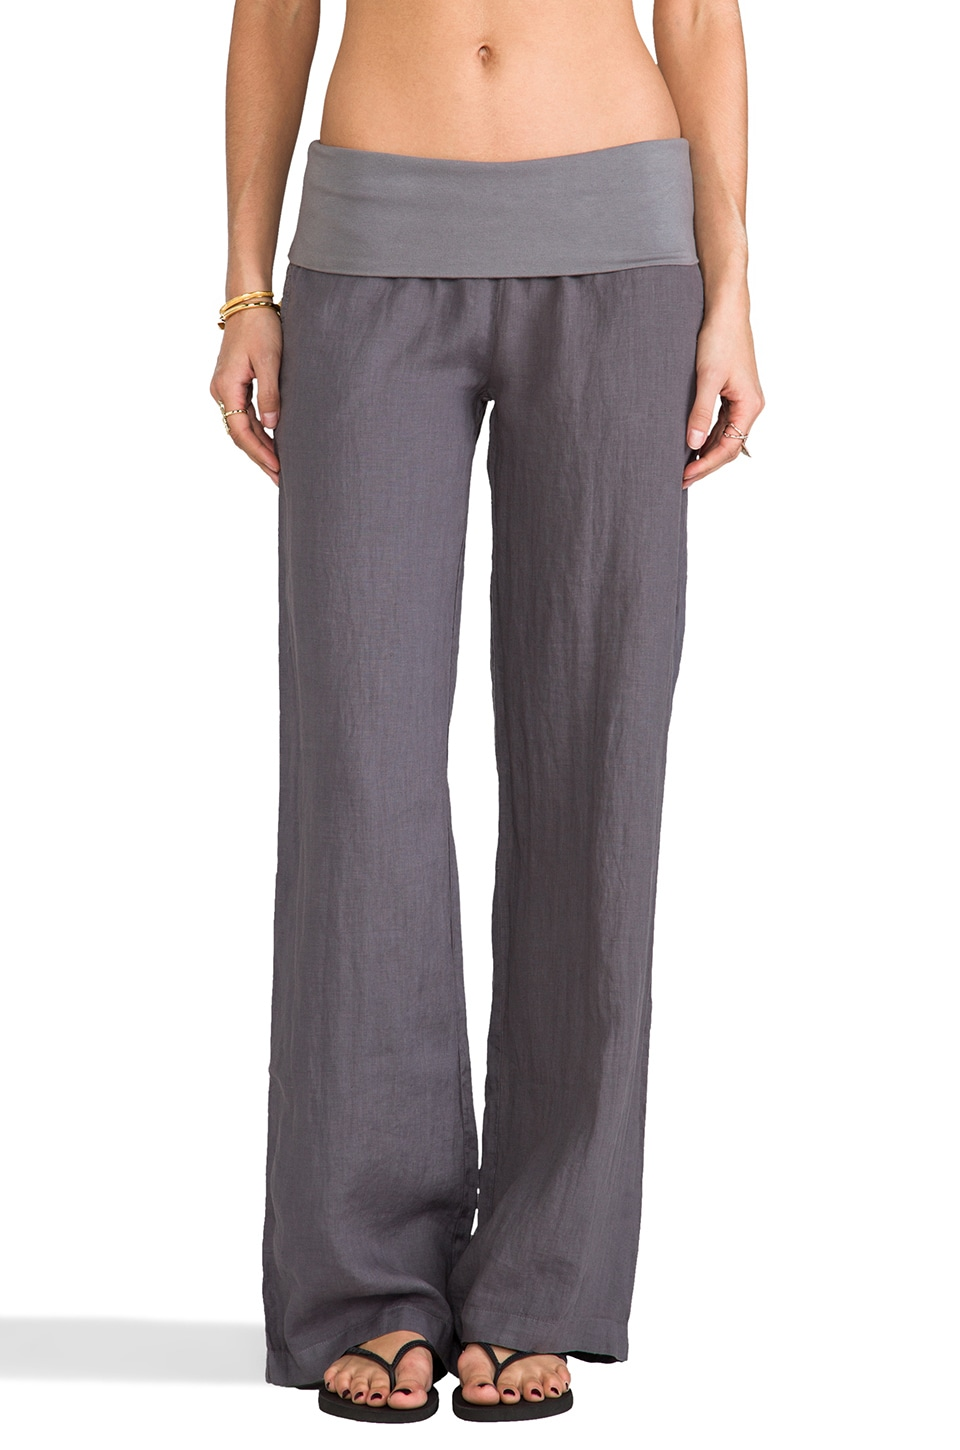 SOLOW Foldover Wide Leg Pant in Gunmetal